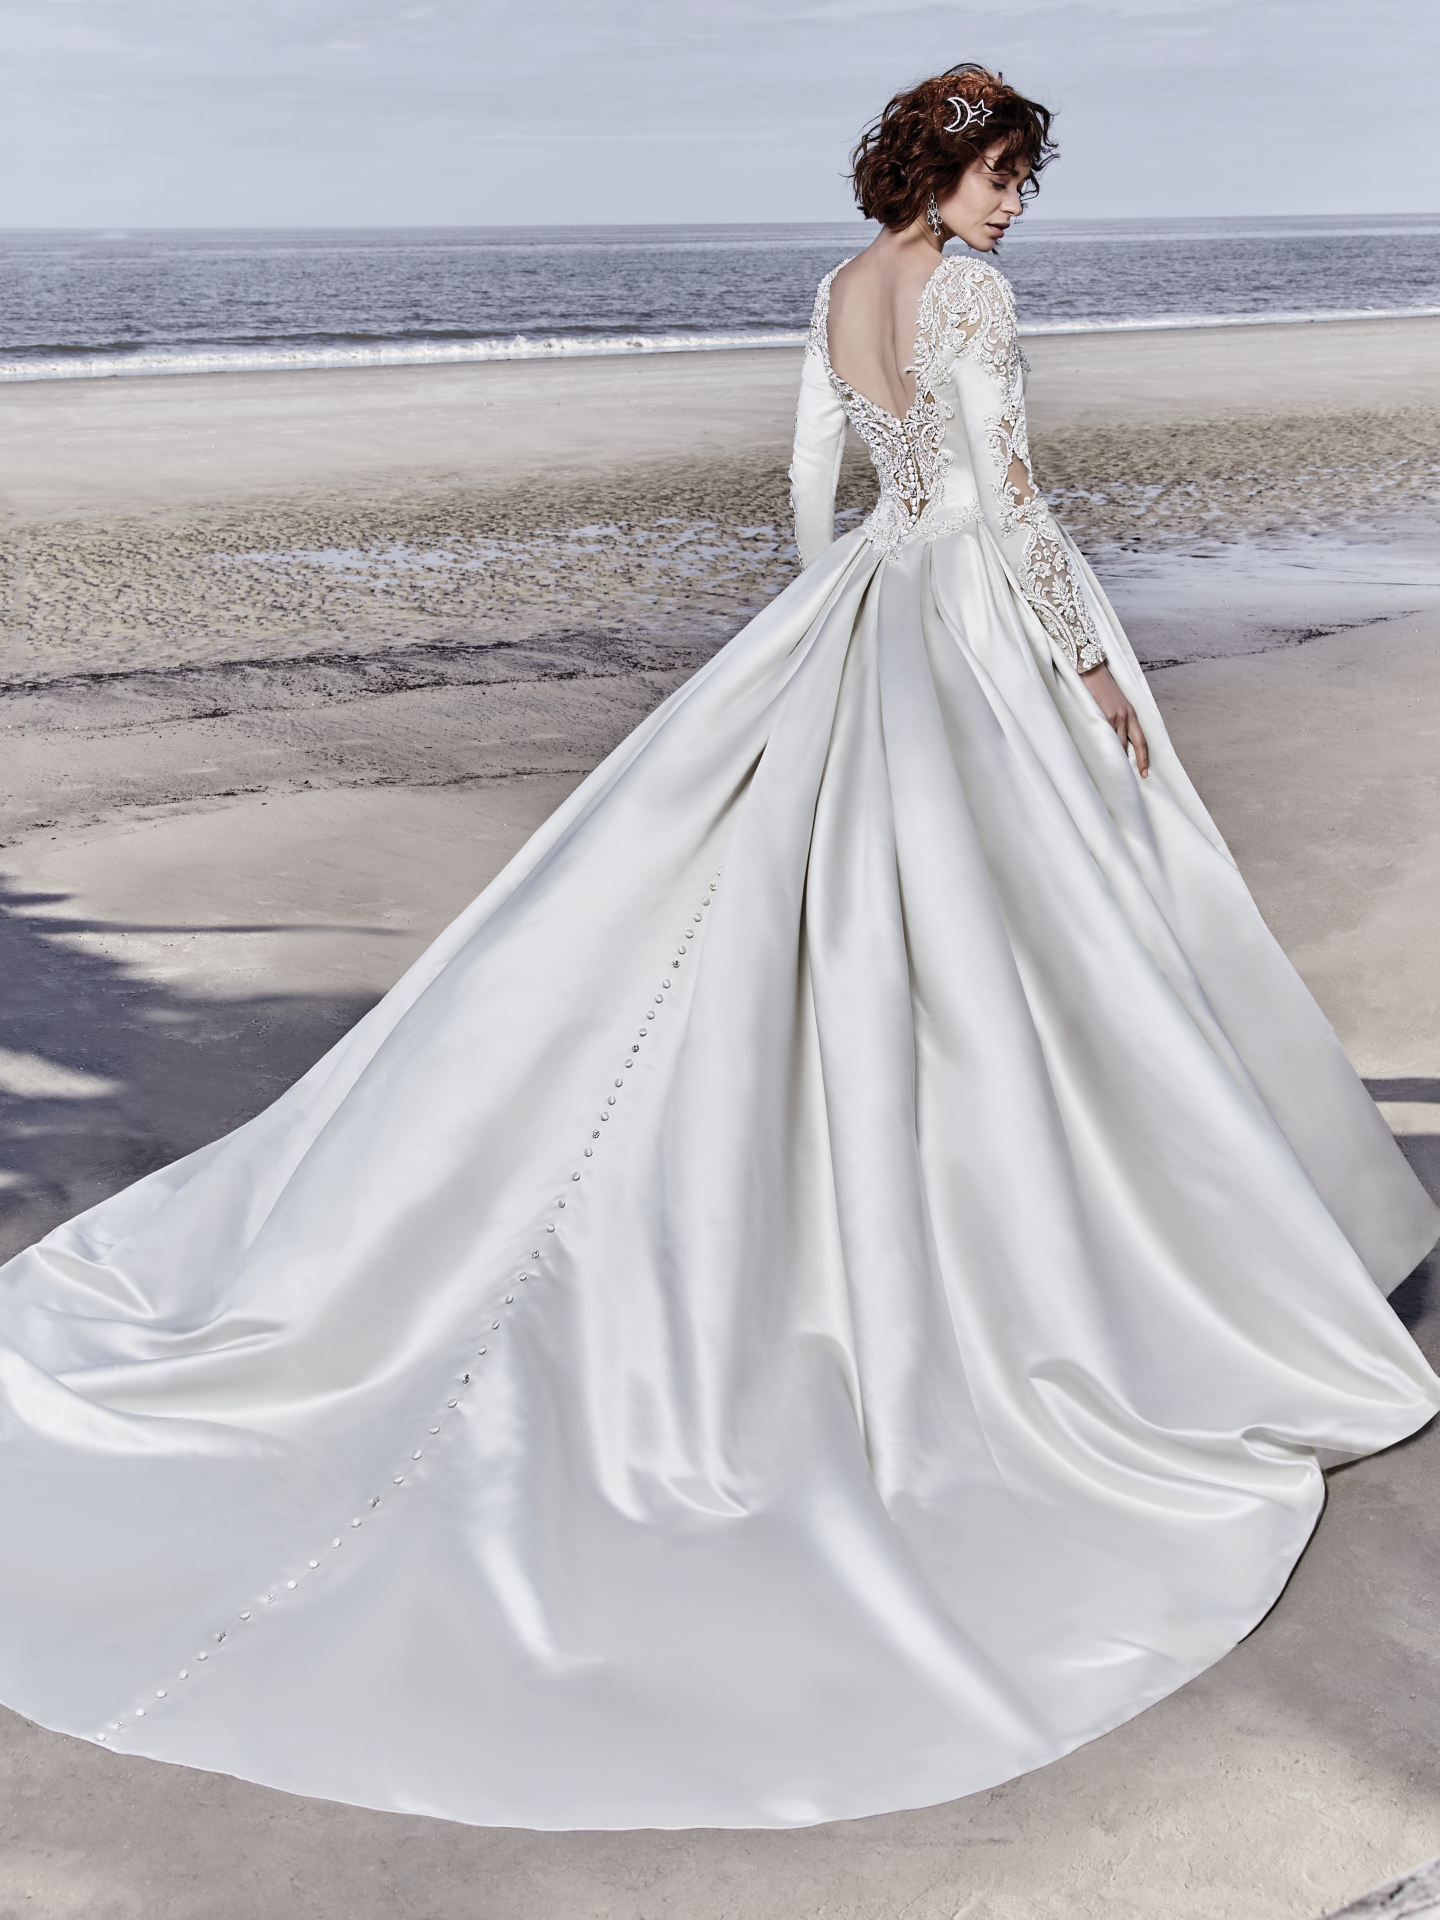 Wedding Dress Color Guide: Shades of White for Every Bride. Alabaster wedding dresses by Sottero and Midgley - Brennan